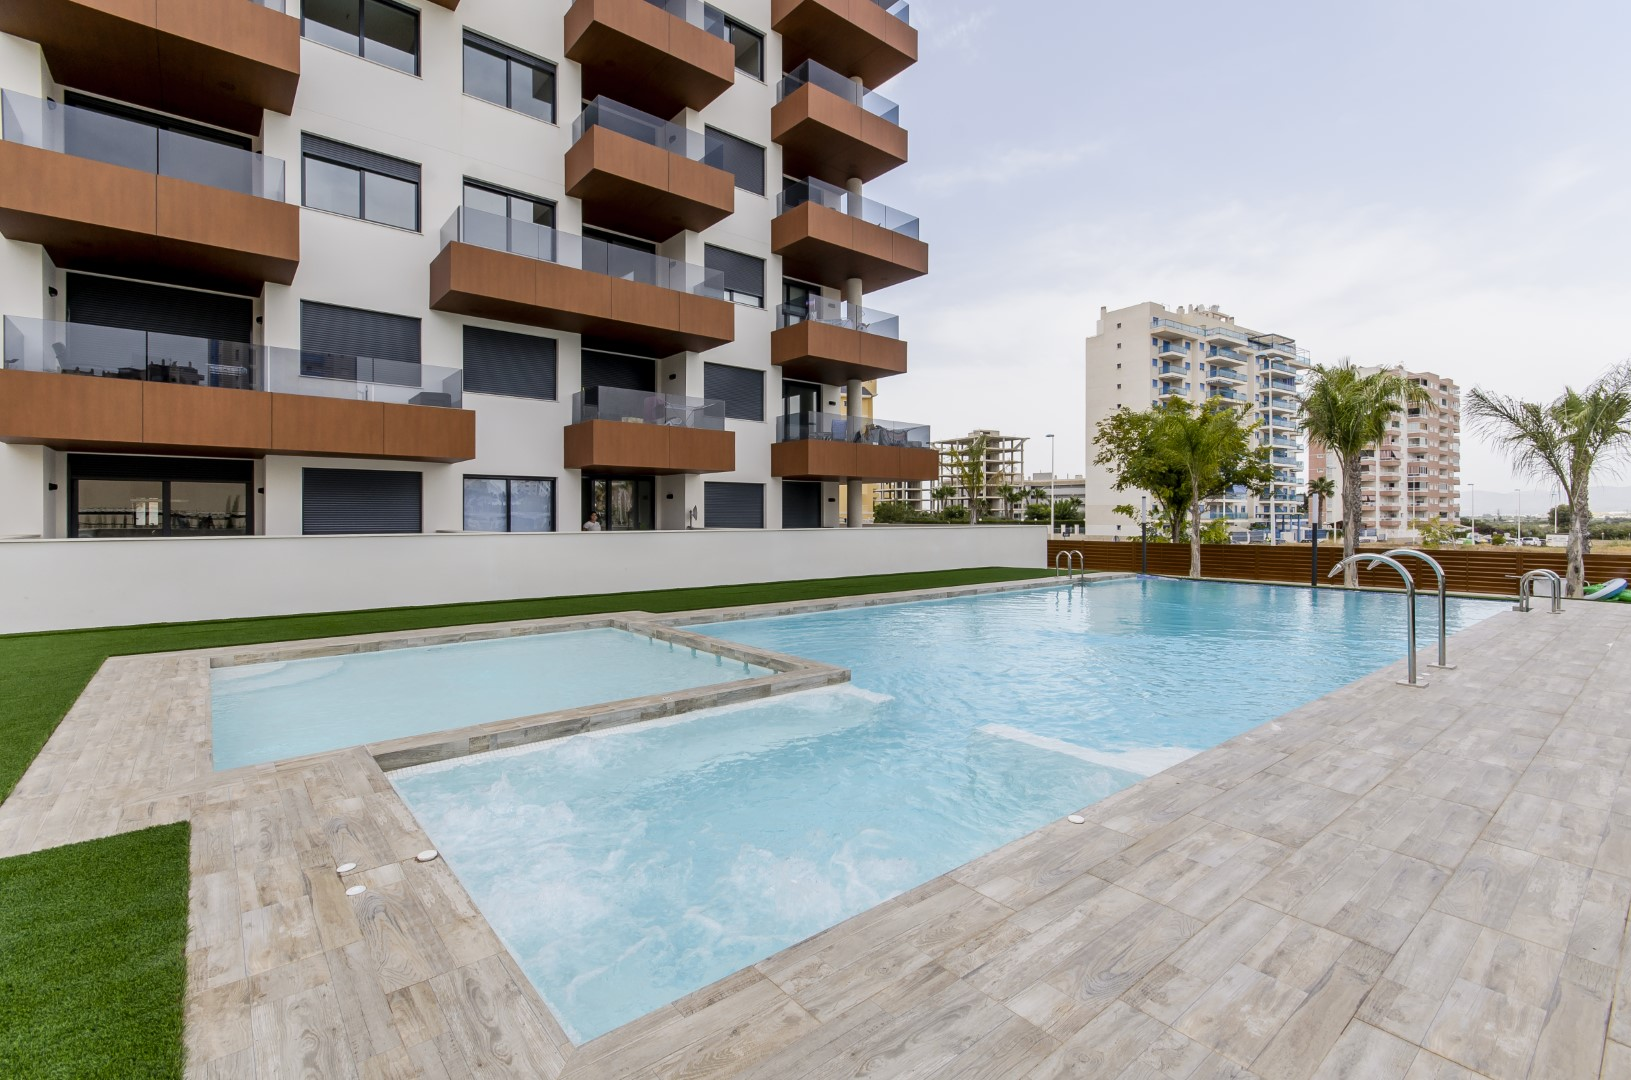 Apartments in Guardamar del Segura,